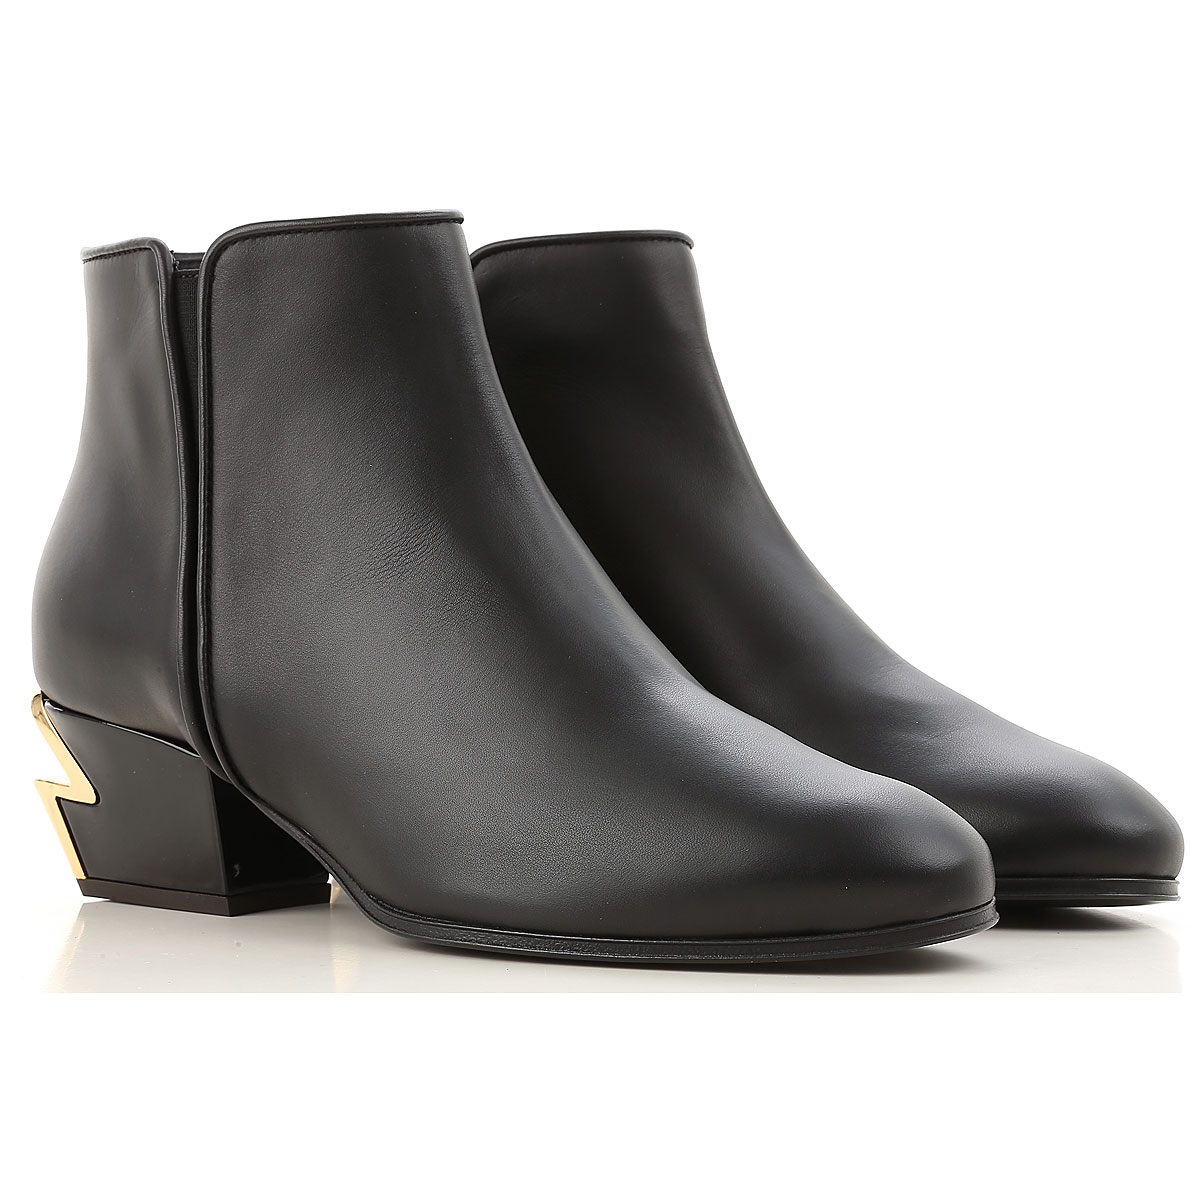 Giuseppe Zanotti Design Boots for Women, Booties On Sale in Outlet, Black, Leather, 2019, 10 6 8.5